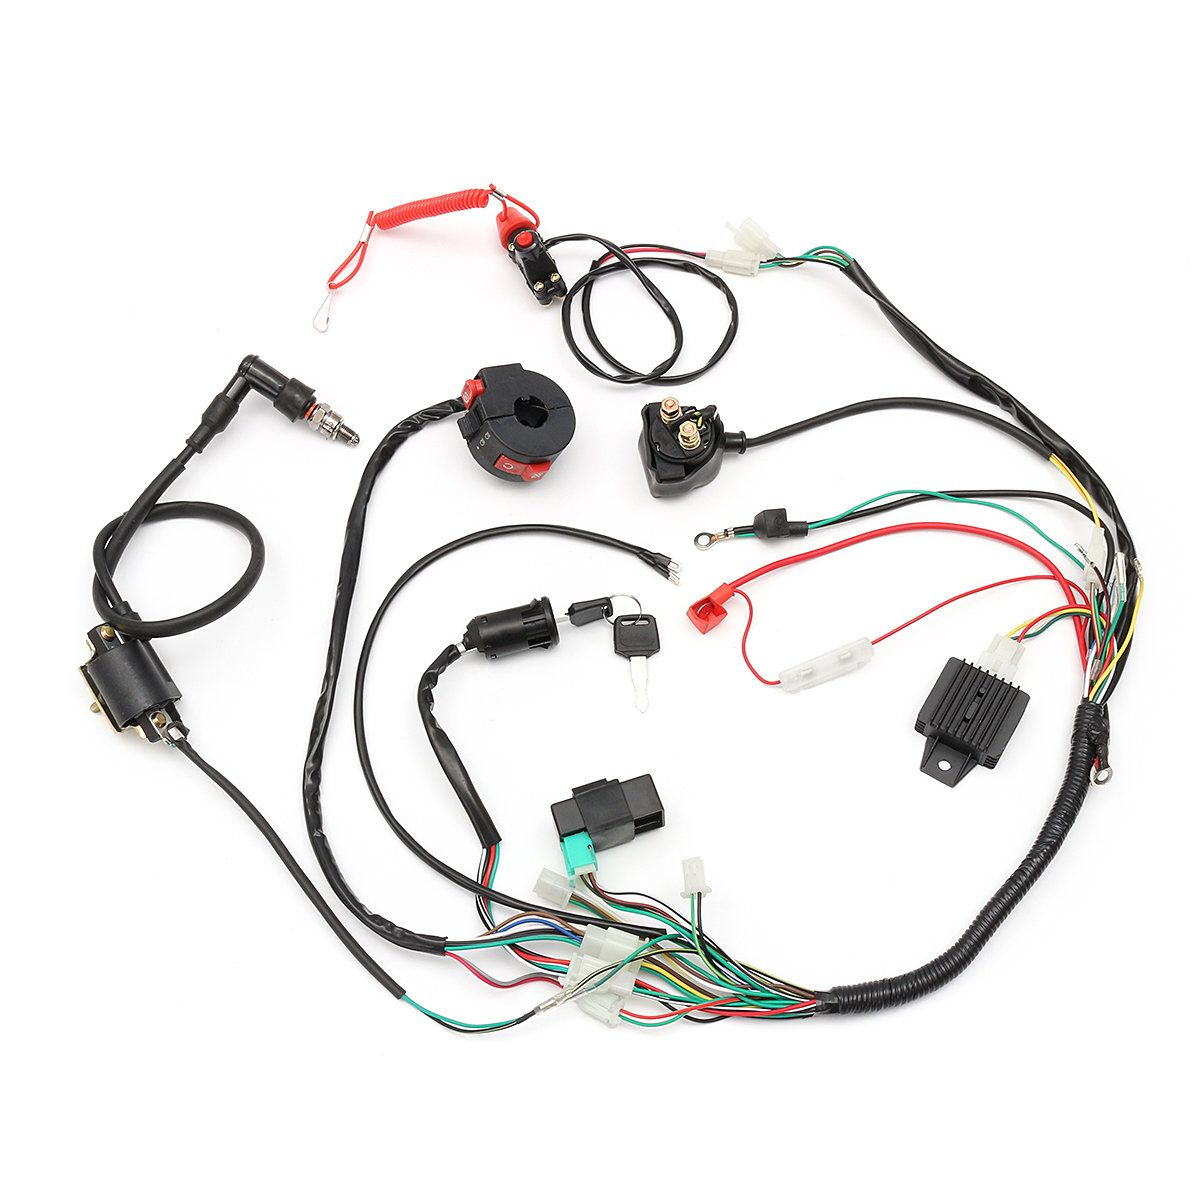 hight resolution of wiring harness loom solenoid coil rectifier cdi 50cc 70cc 110cc 125cc atv quad bike go kart